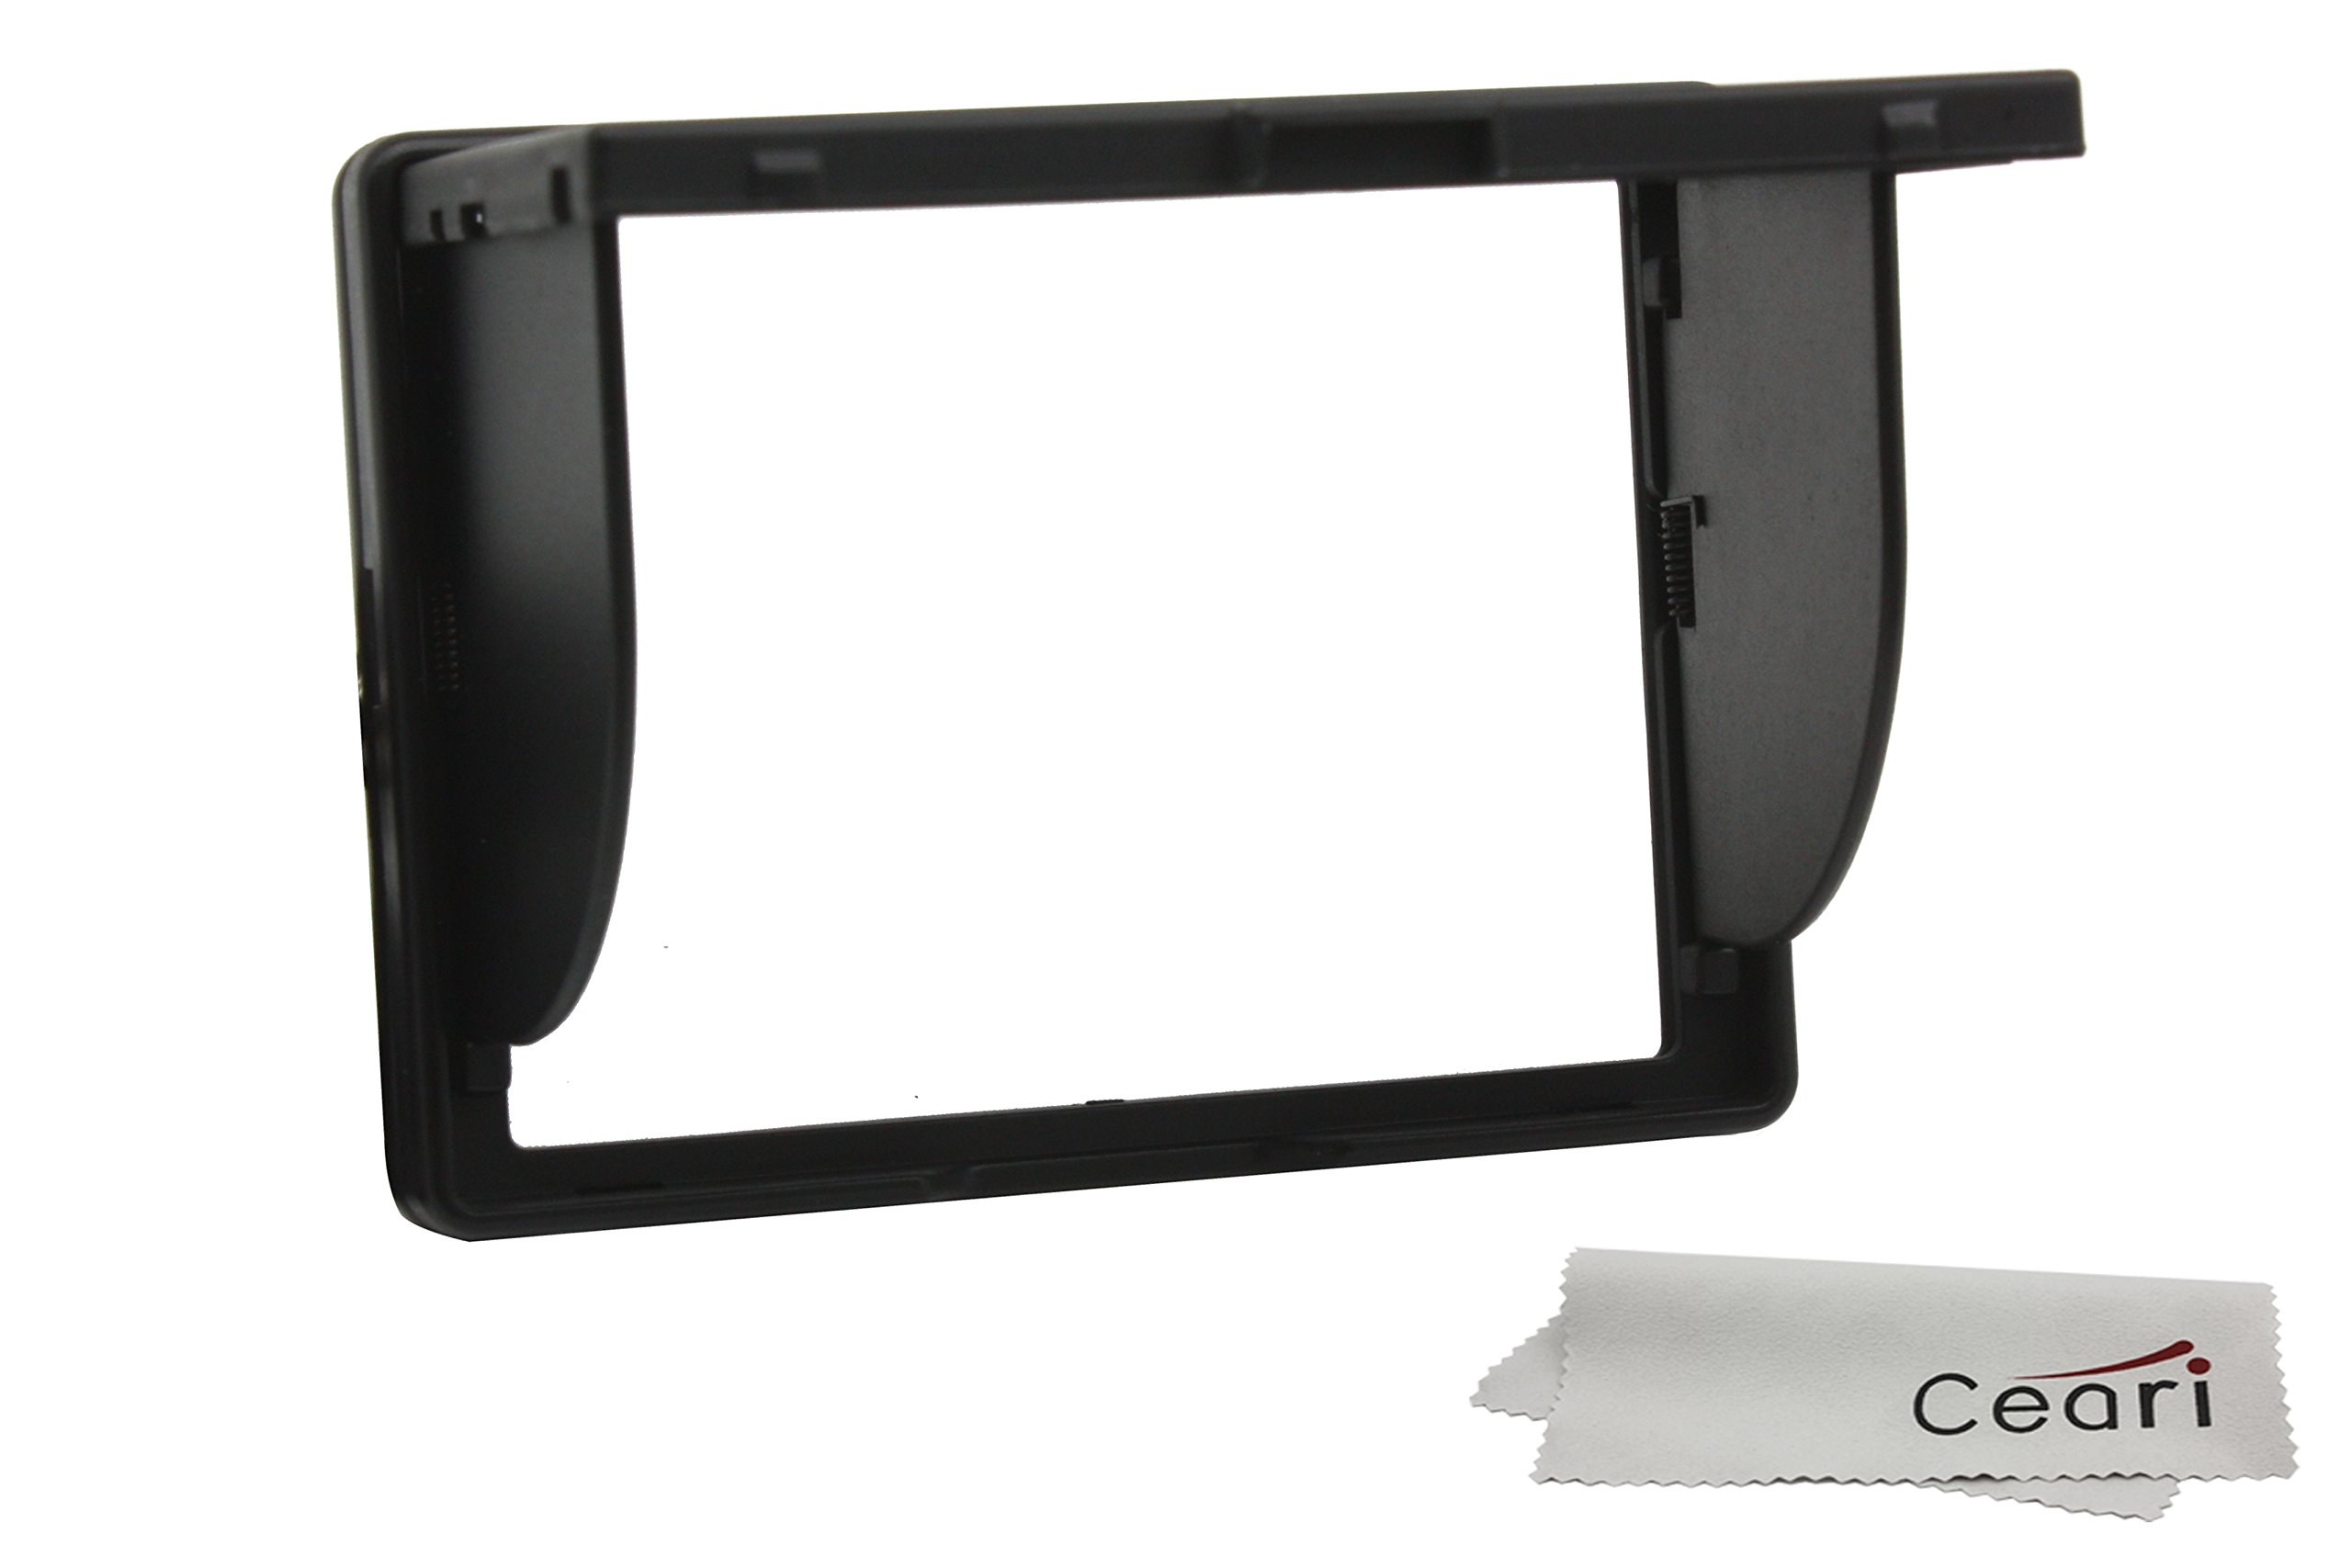 CEARI Universal 3'' LCD Screen Pop up Hood for Canon EOS 450D 500D 550D 600D 650D 700D 750D 760D 100D 60D 70D Digital Camera + MicroFiber Clean Cloth